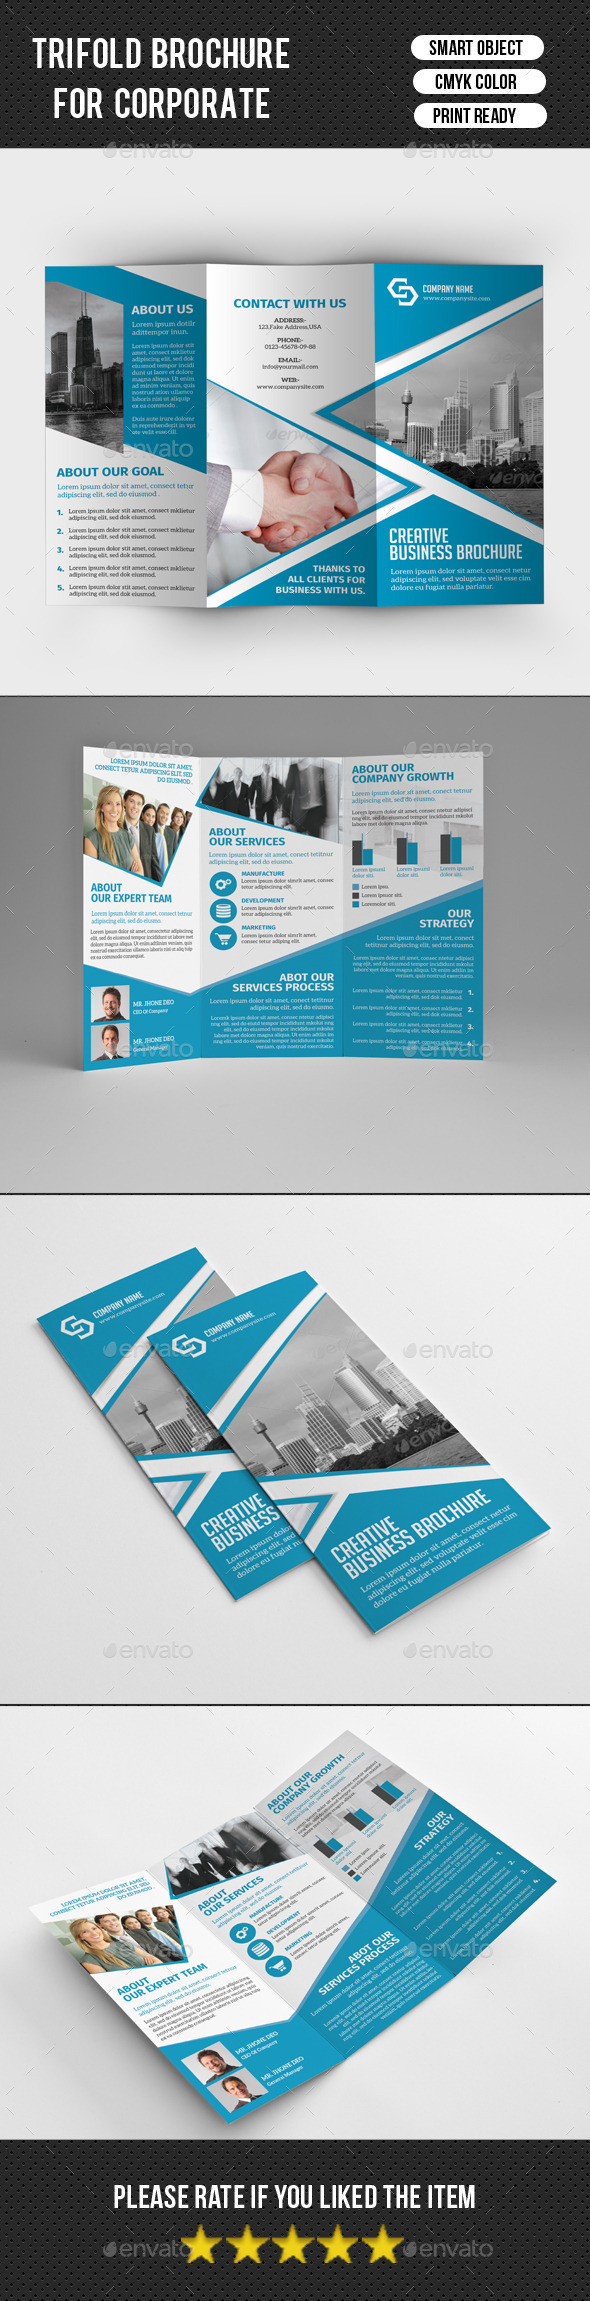 GraphicRiver Corporate Trifold Brochure-V226 10772496